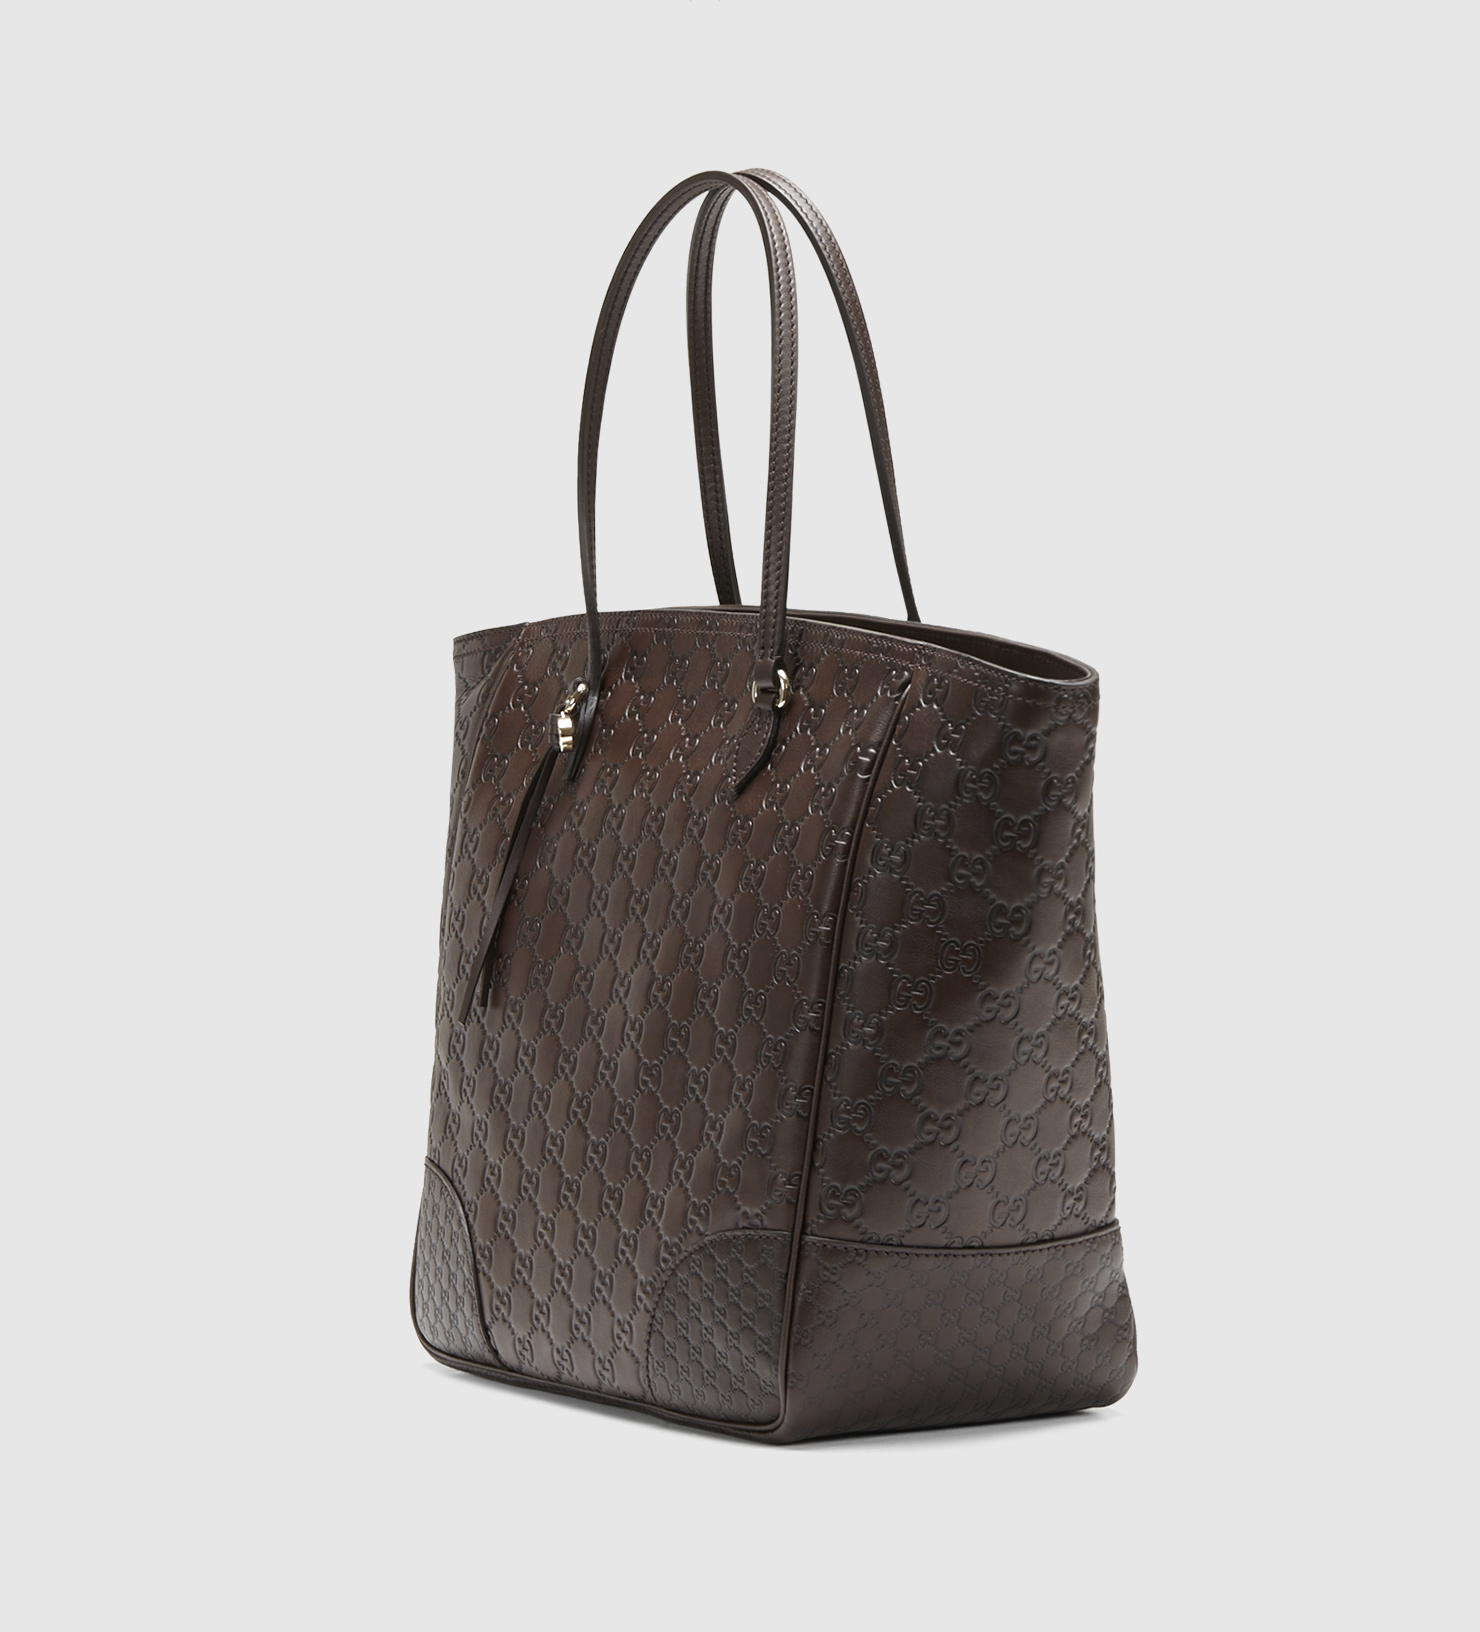 56a8126572f Gucci Bree Brown Ssima Leather Tote in Brown - Lyst